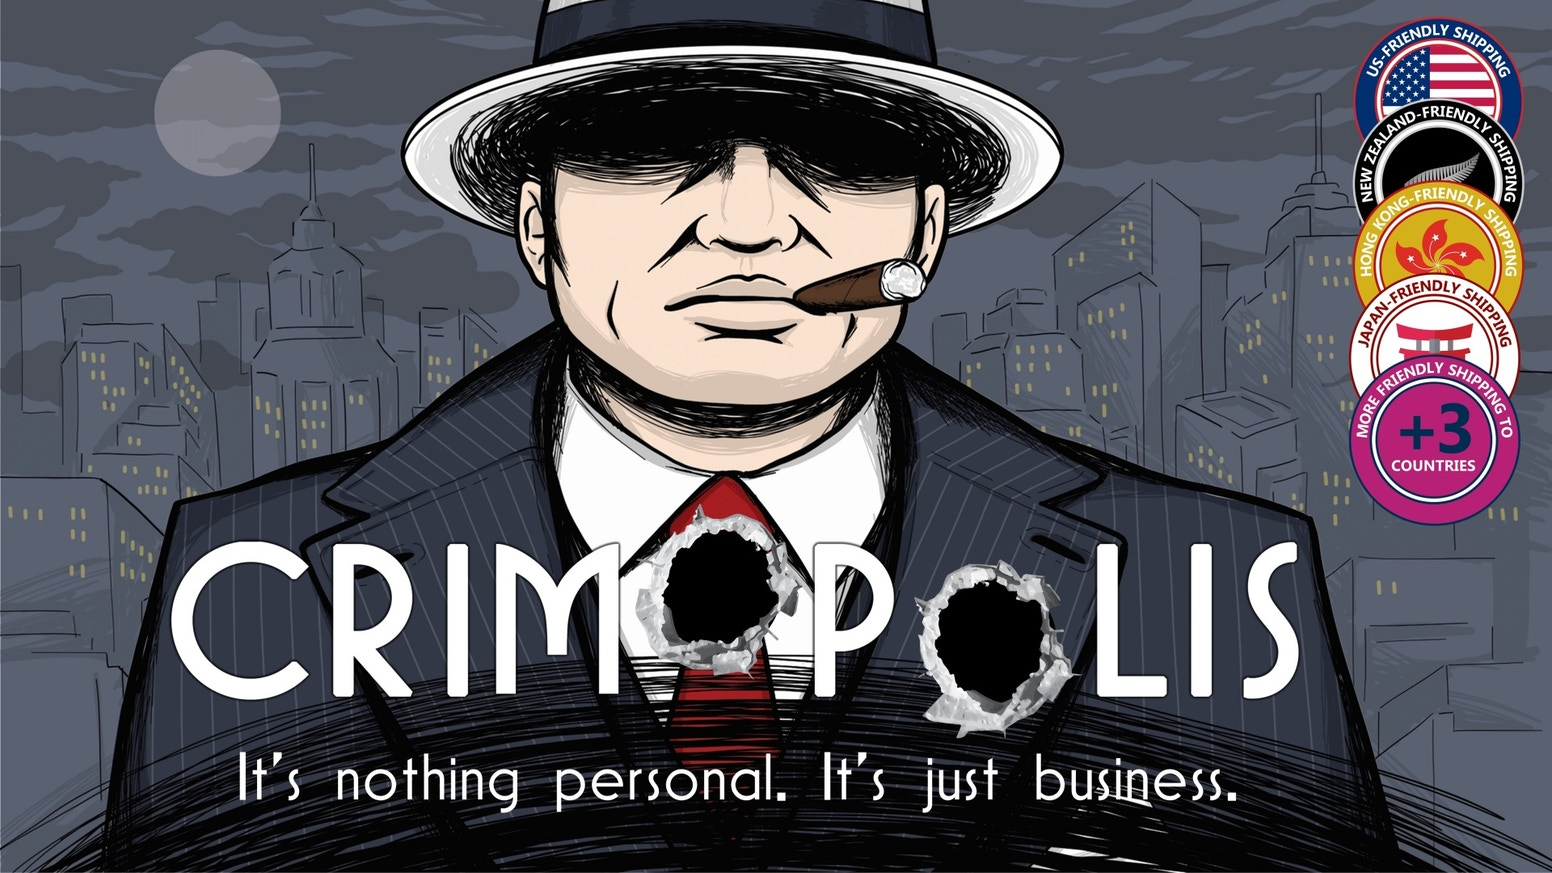 Fast-paced worker and tile placement strategy game set in an incredibly immersive 1920s gangster world.